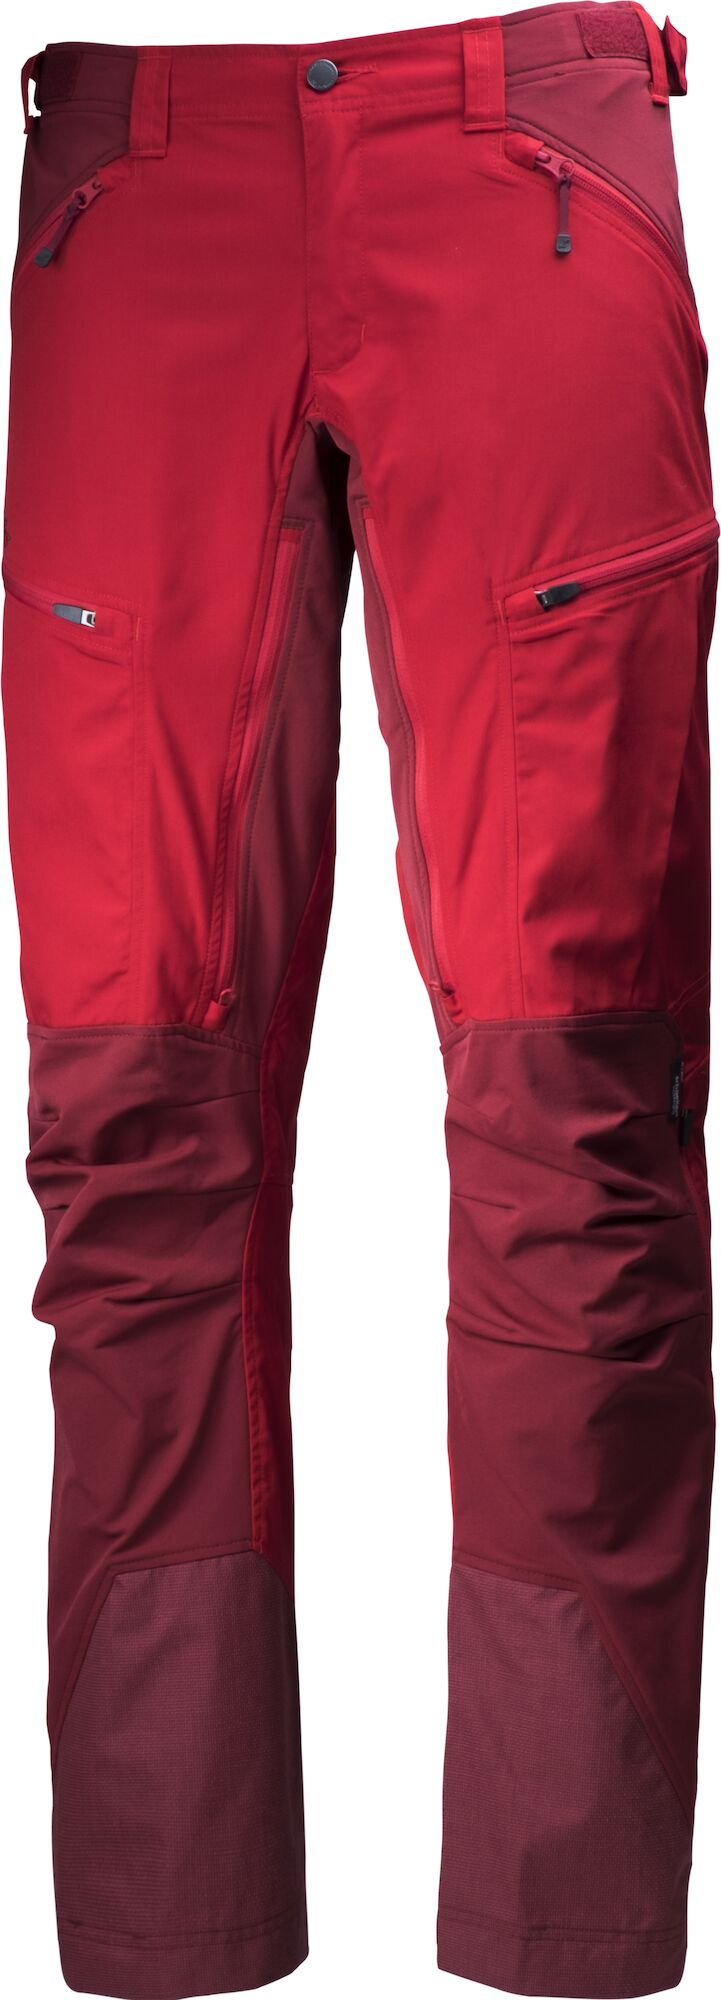 "Lundhags ""Makke Ms Pant"" - red"